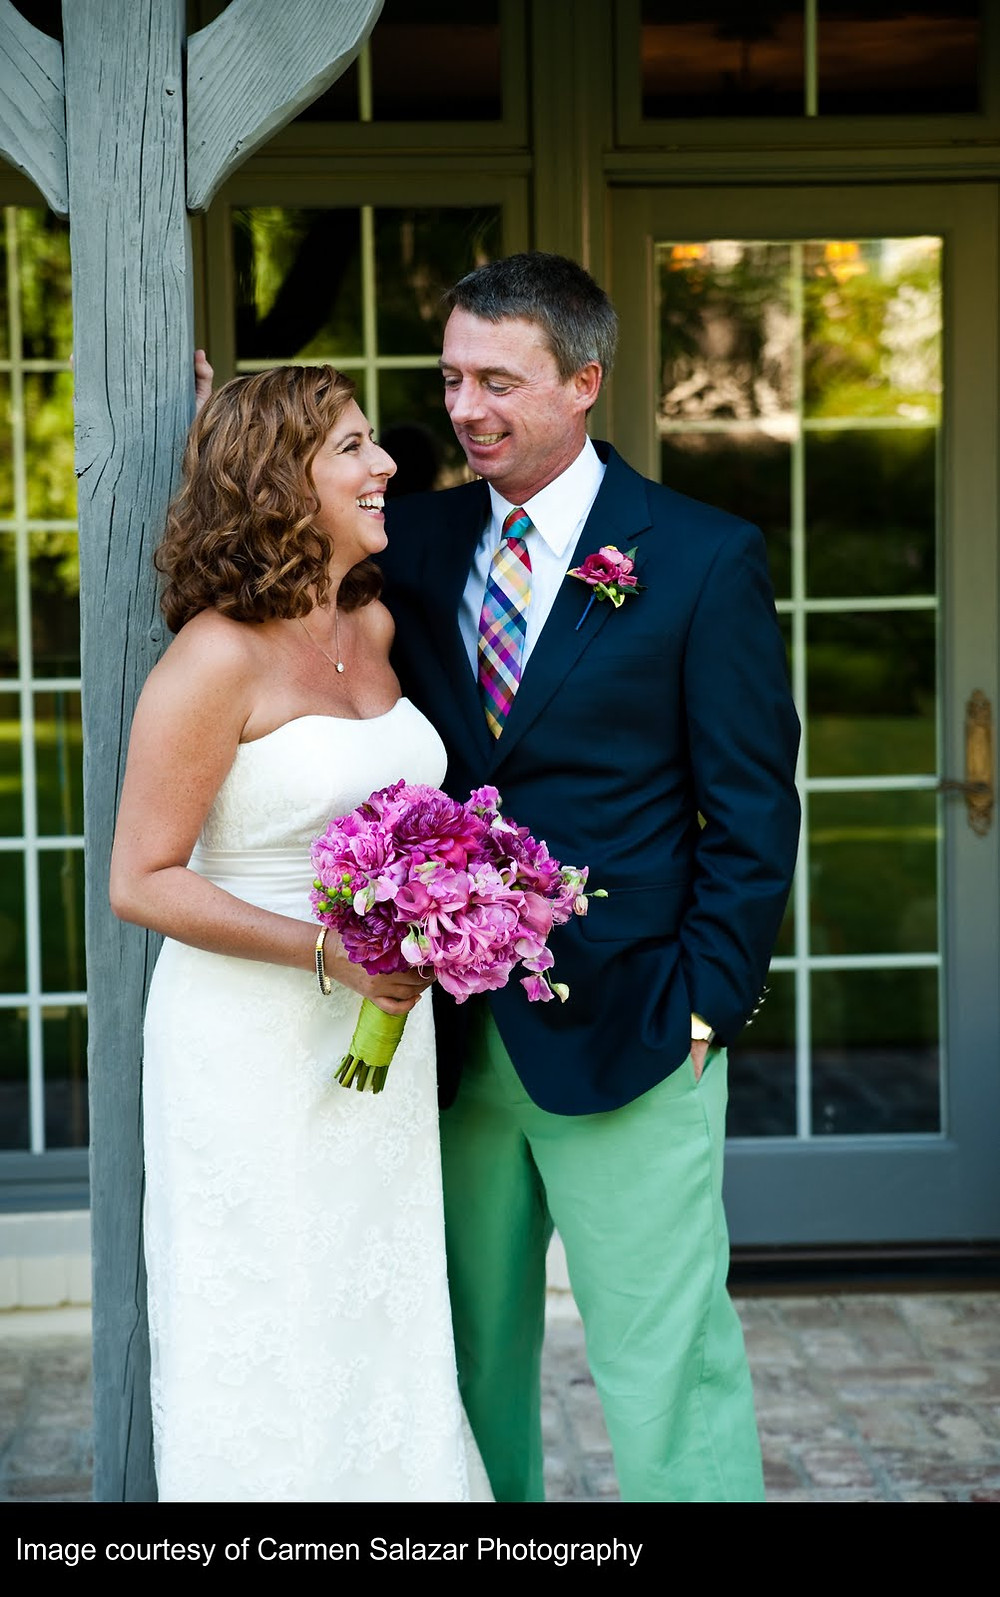 Fuchsia pink bouquet and boutonniere by Visual Impact Design | Carmen Salazar Photography